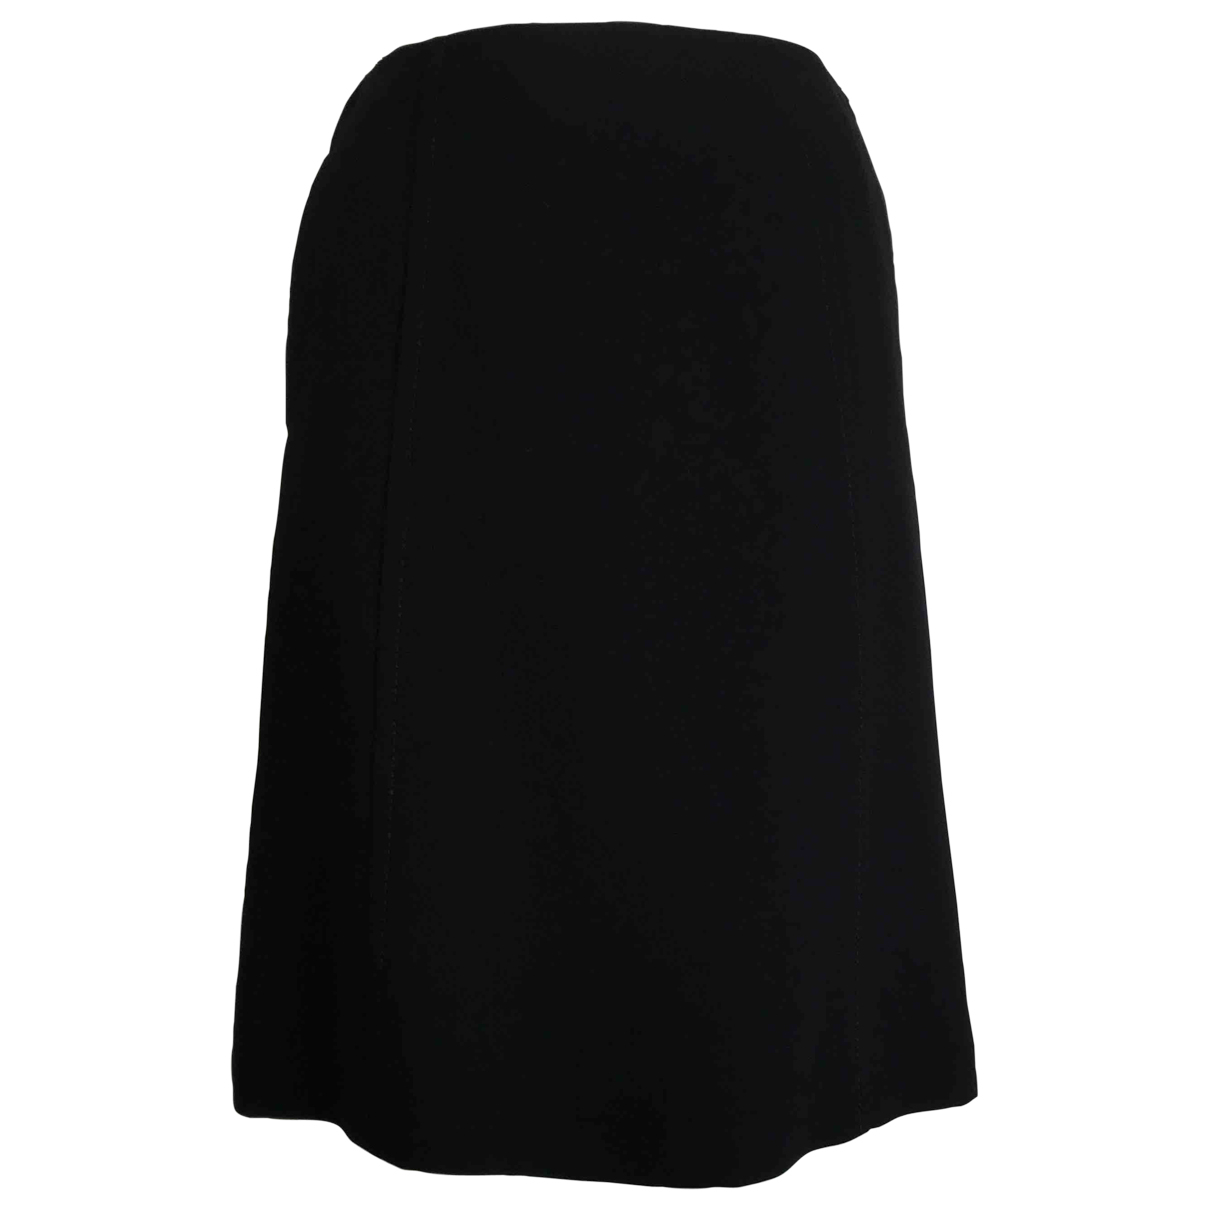 Prada N Black skirt for Women 38 IT